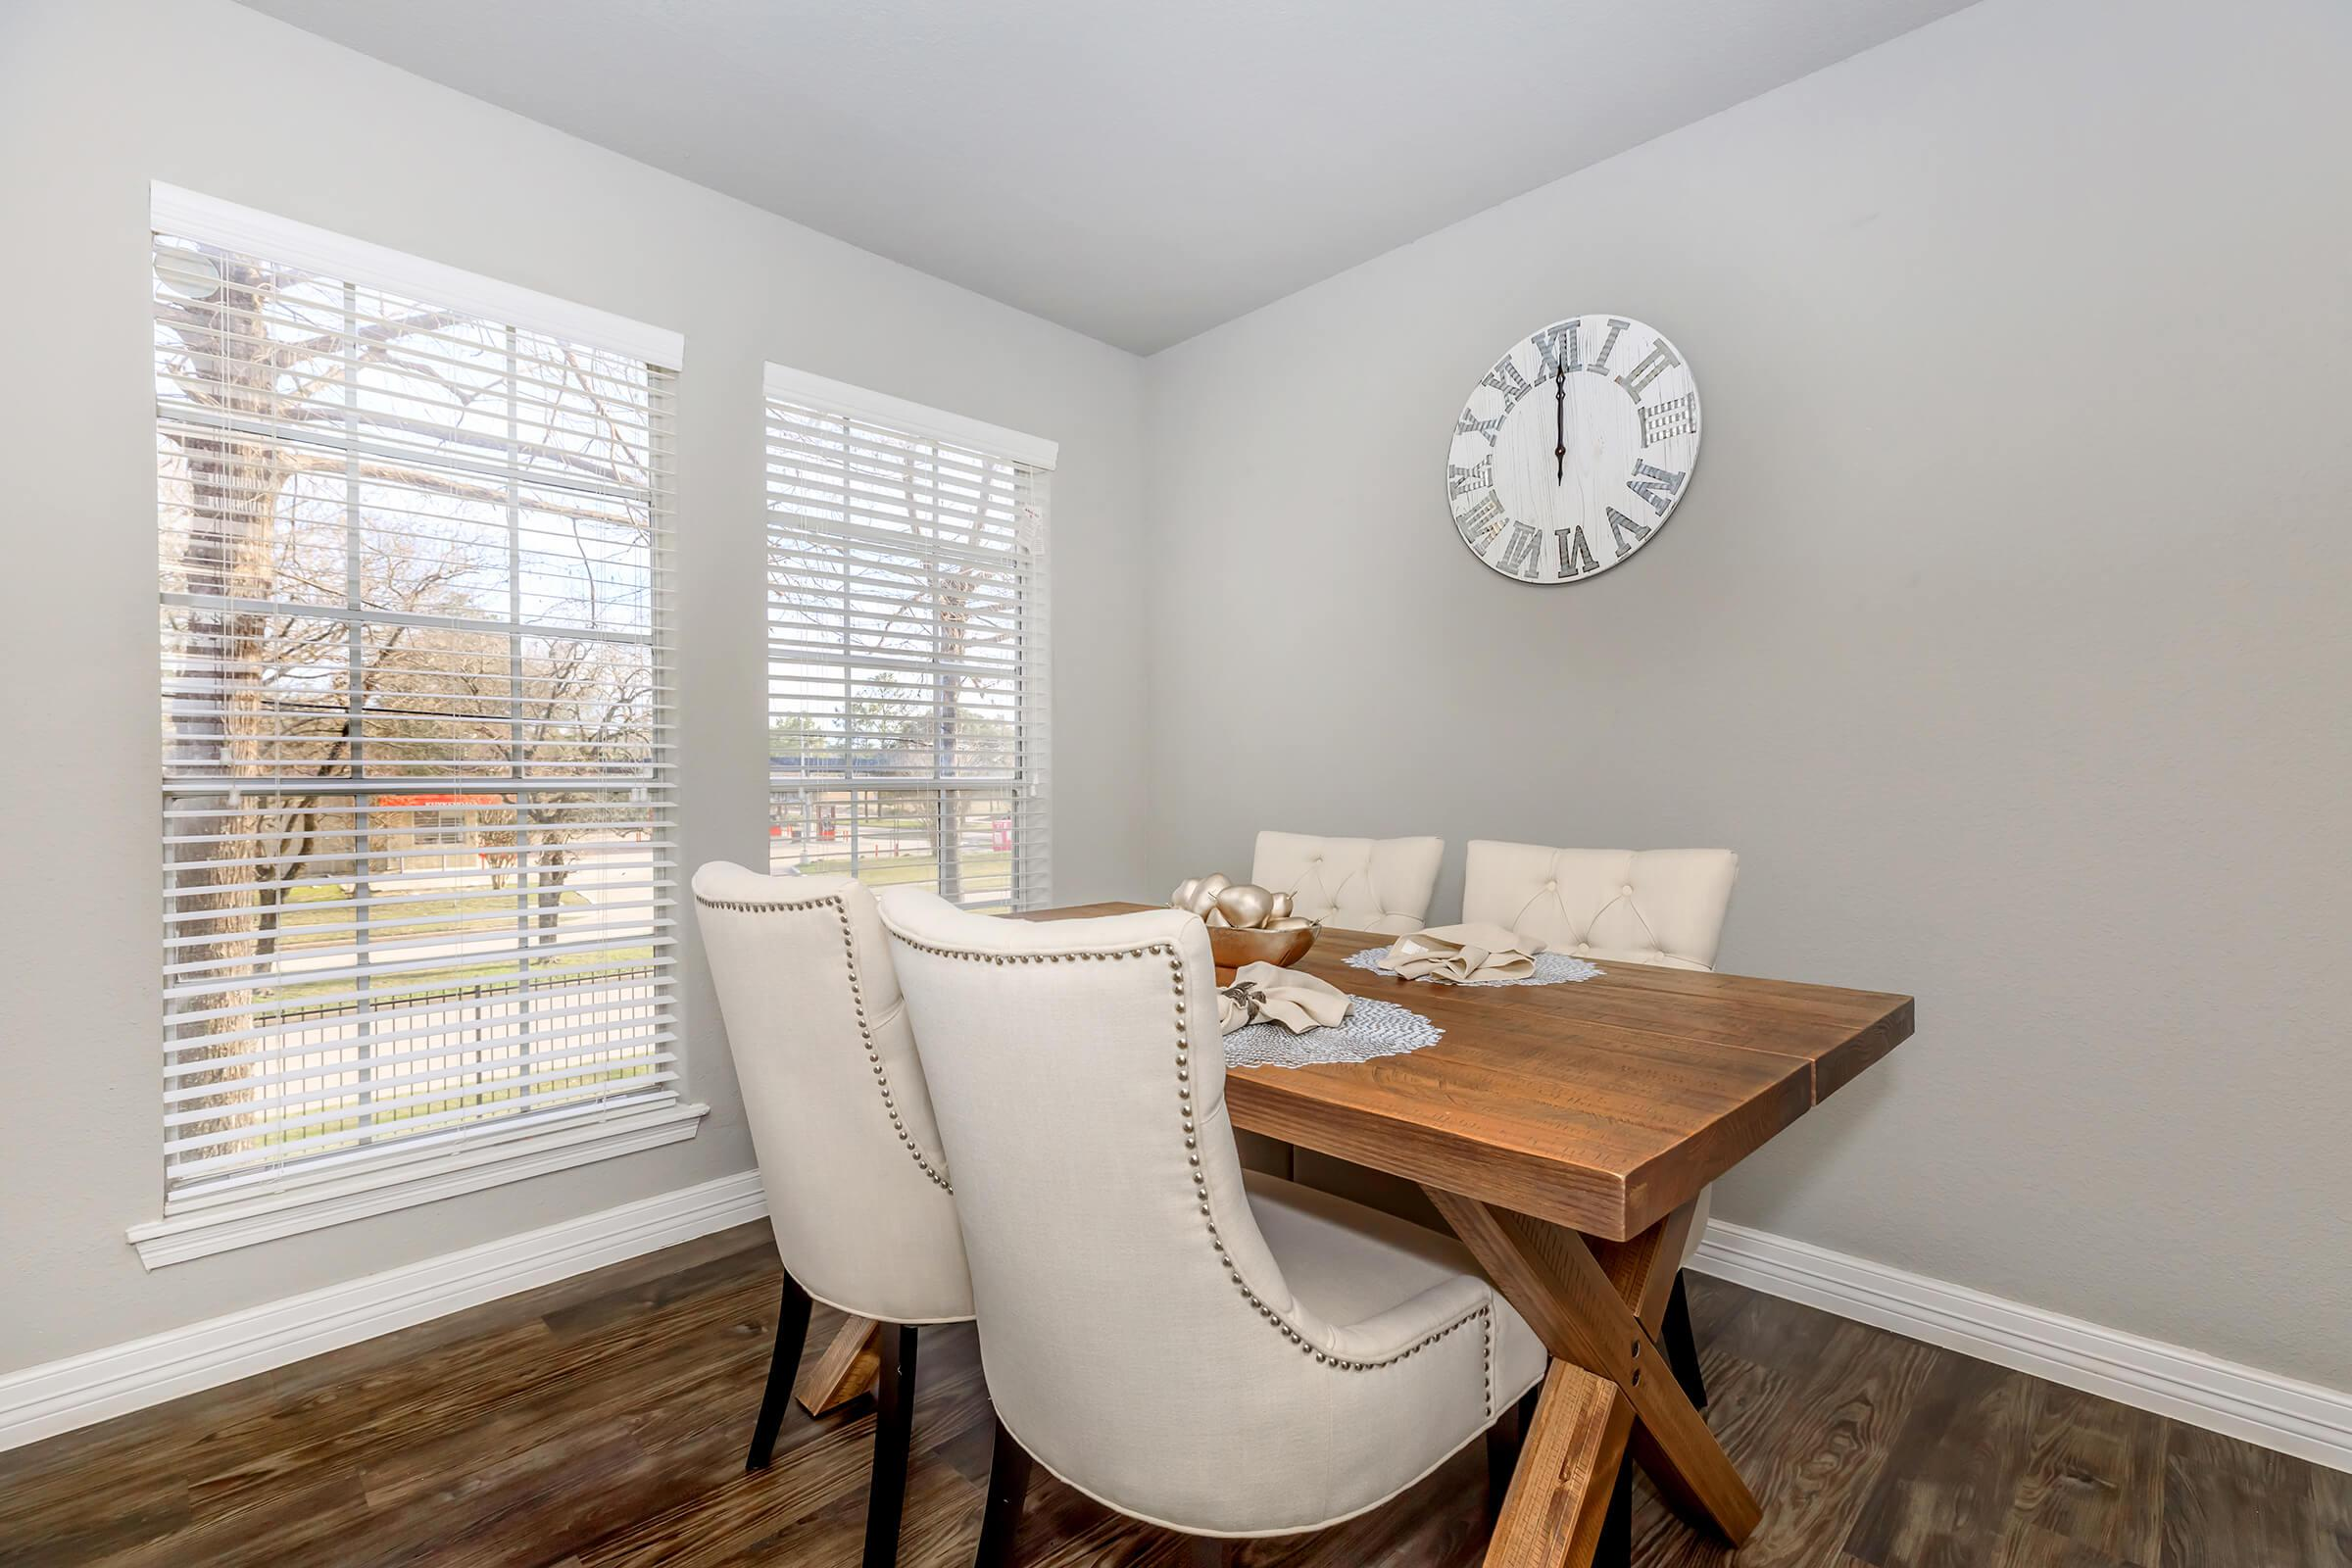 a living room with a clock on a table